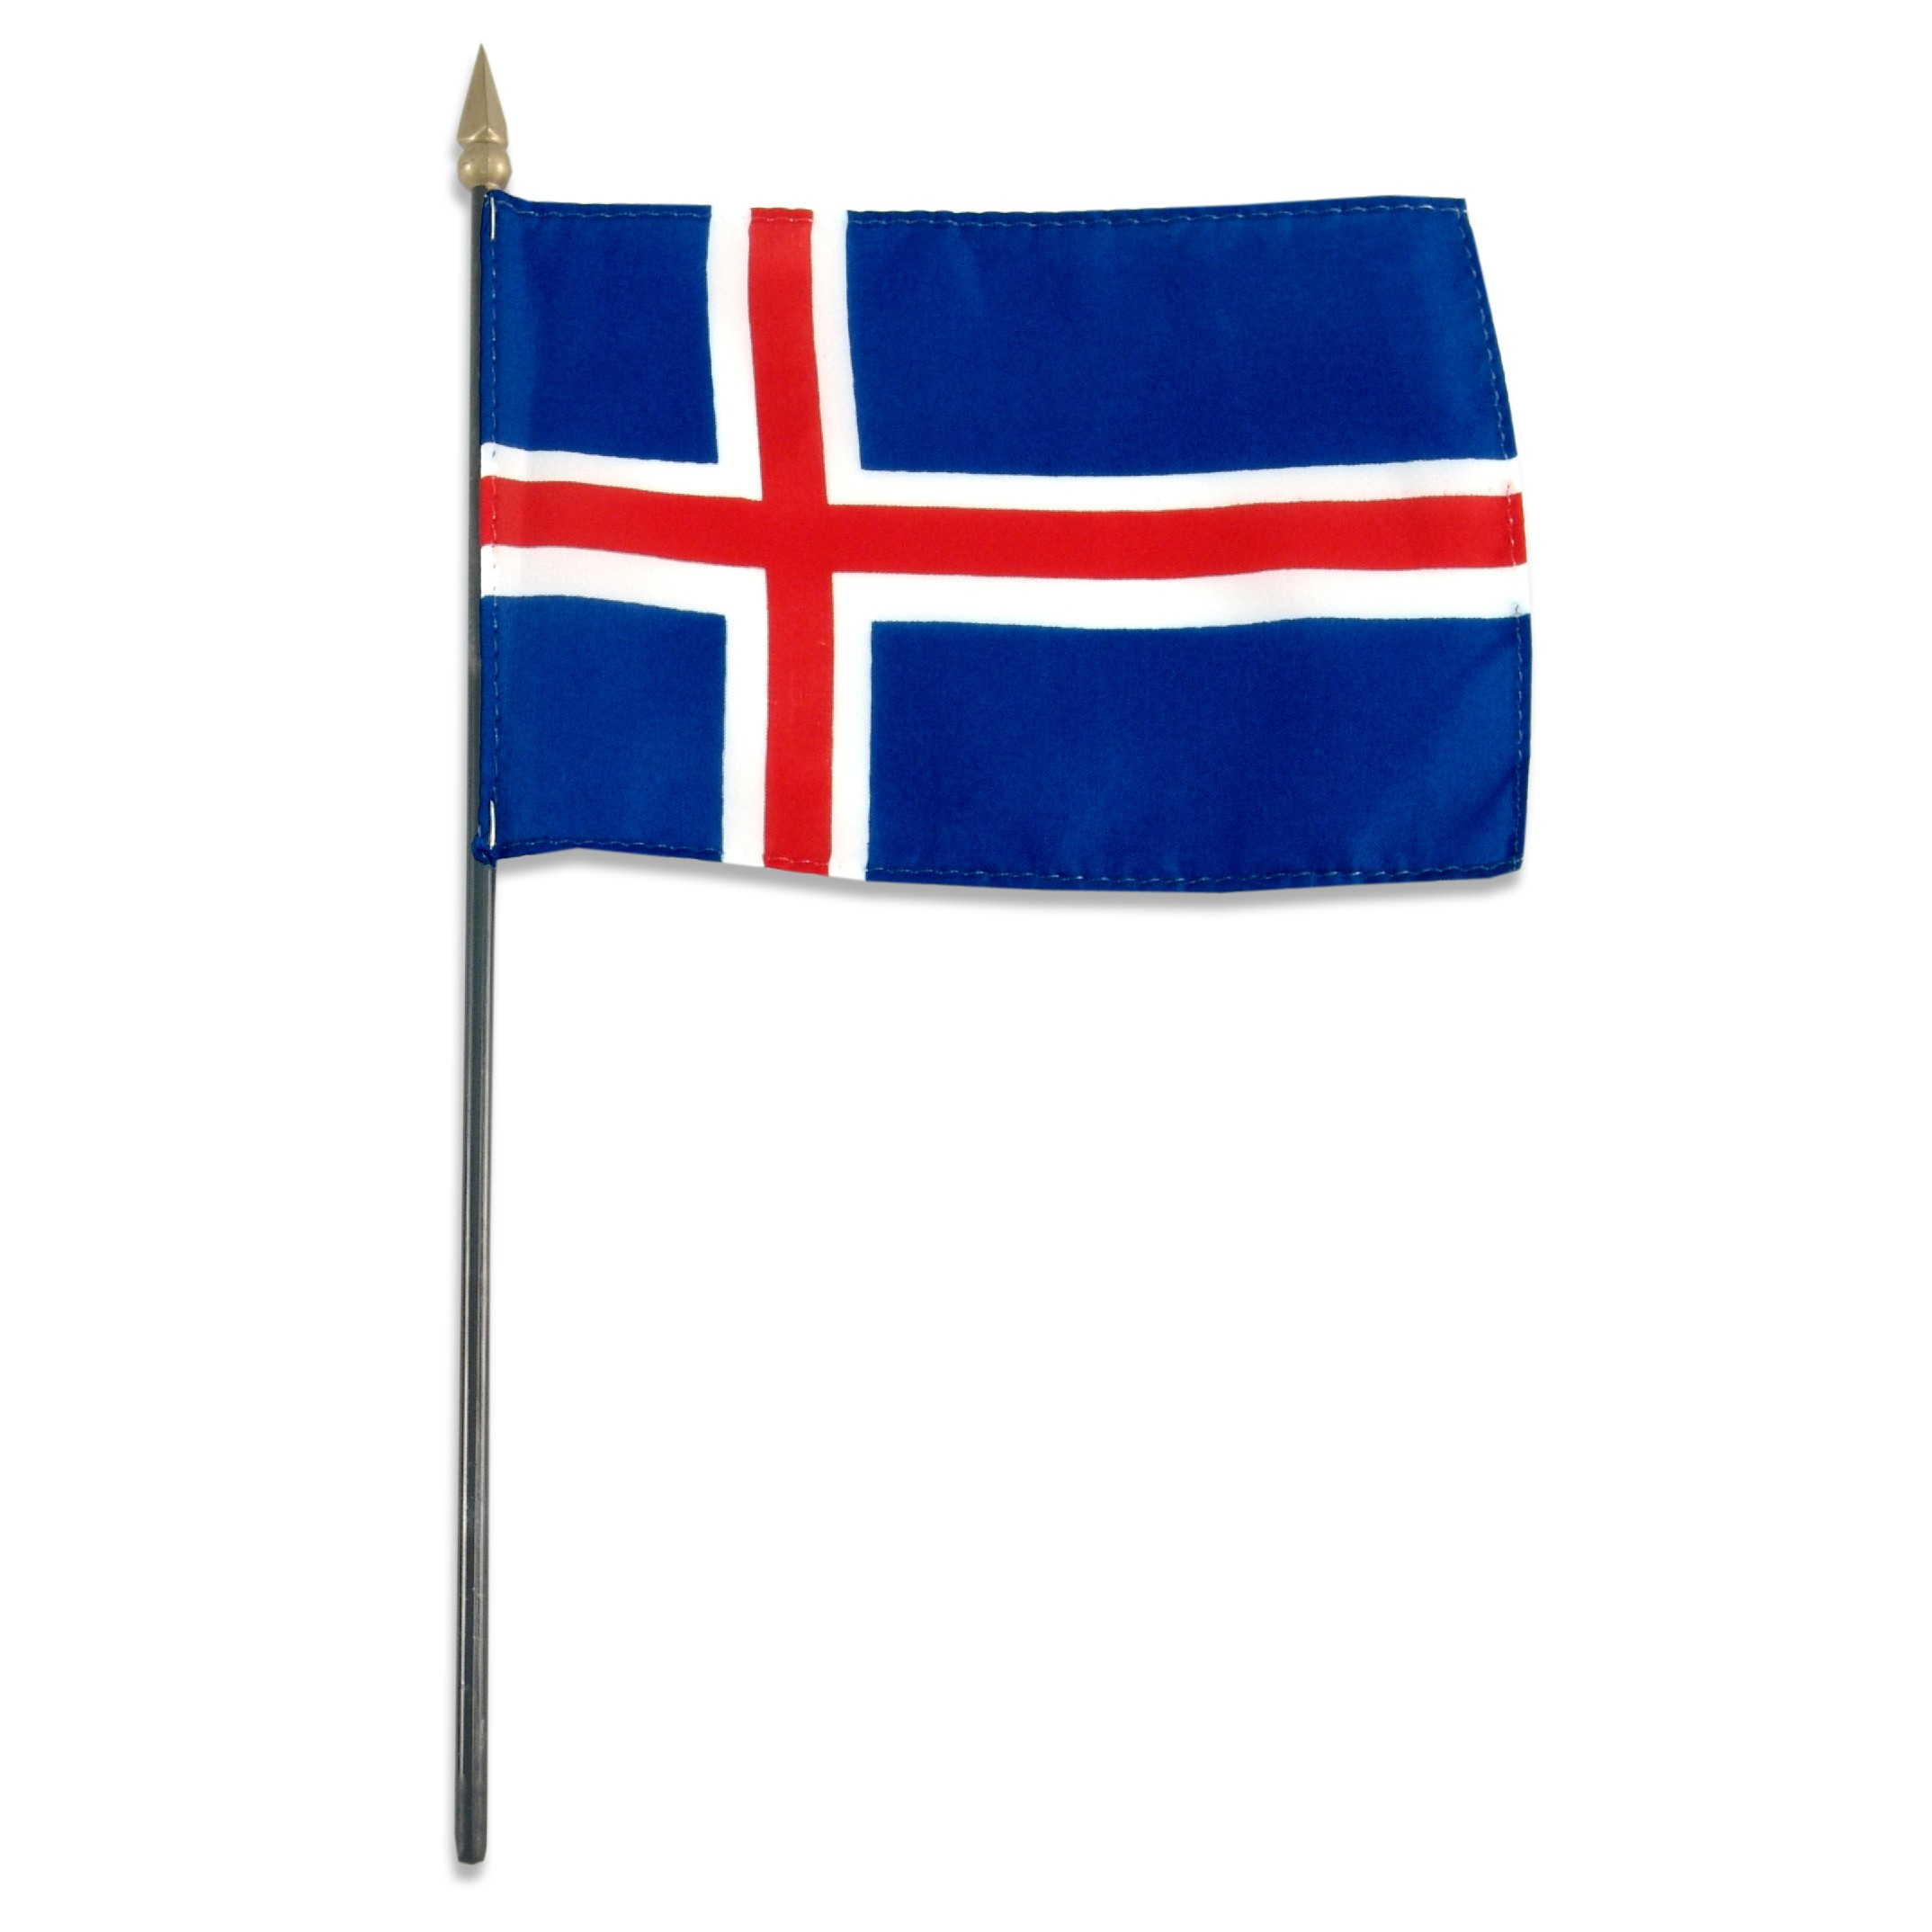 17 Best ideas about Iceland Flag on Pinterest | Iceland, Reykjavik